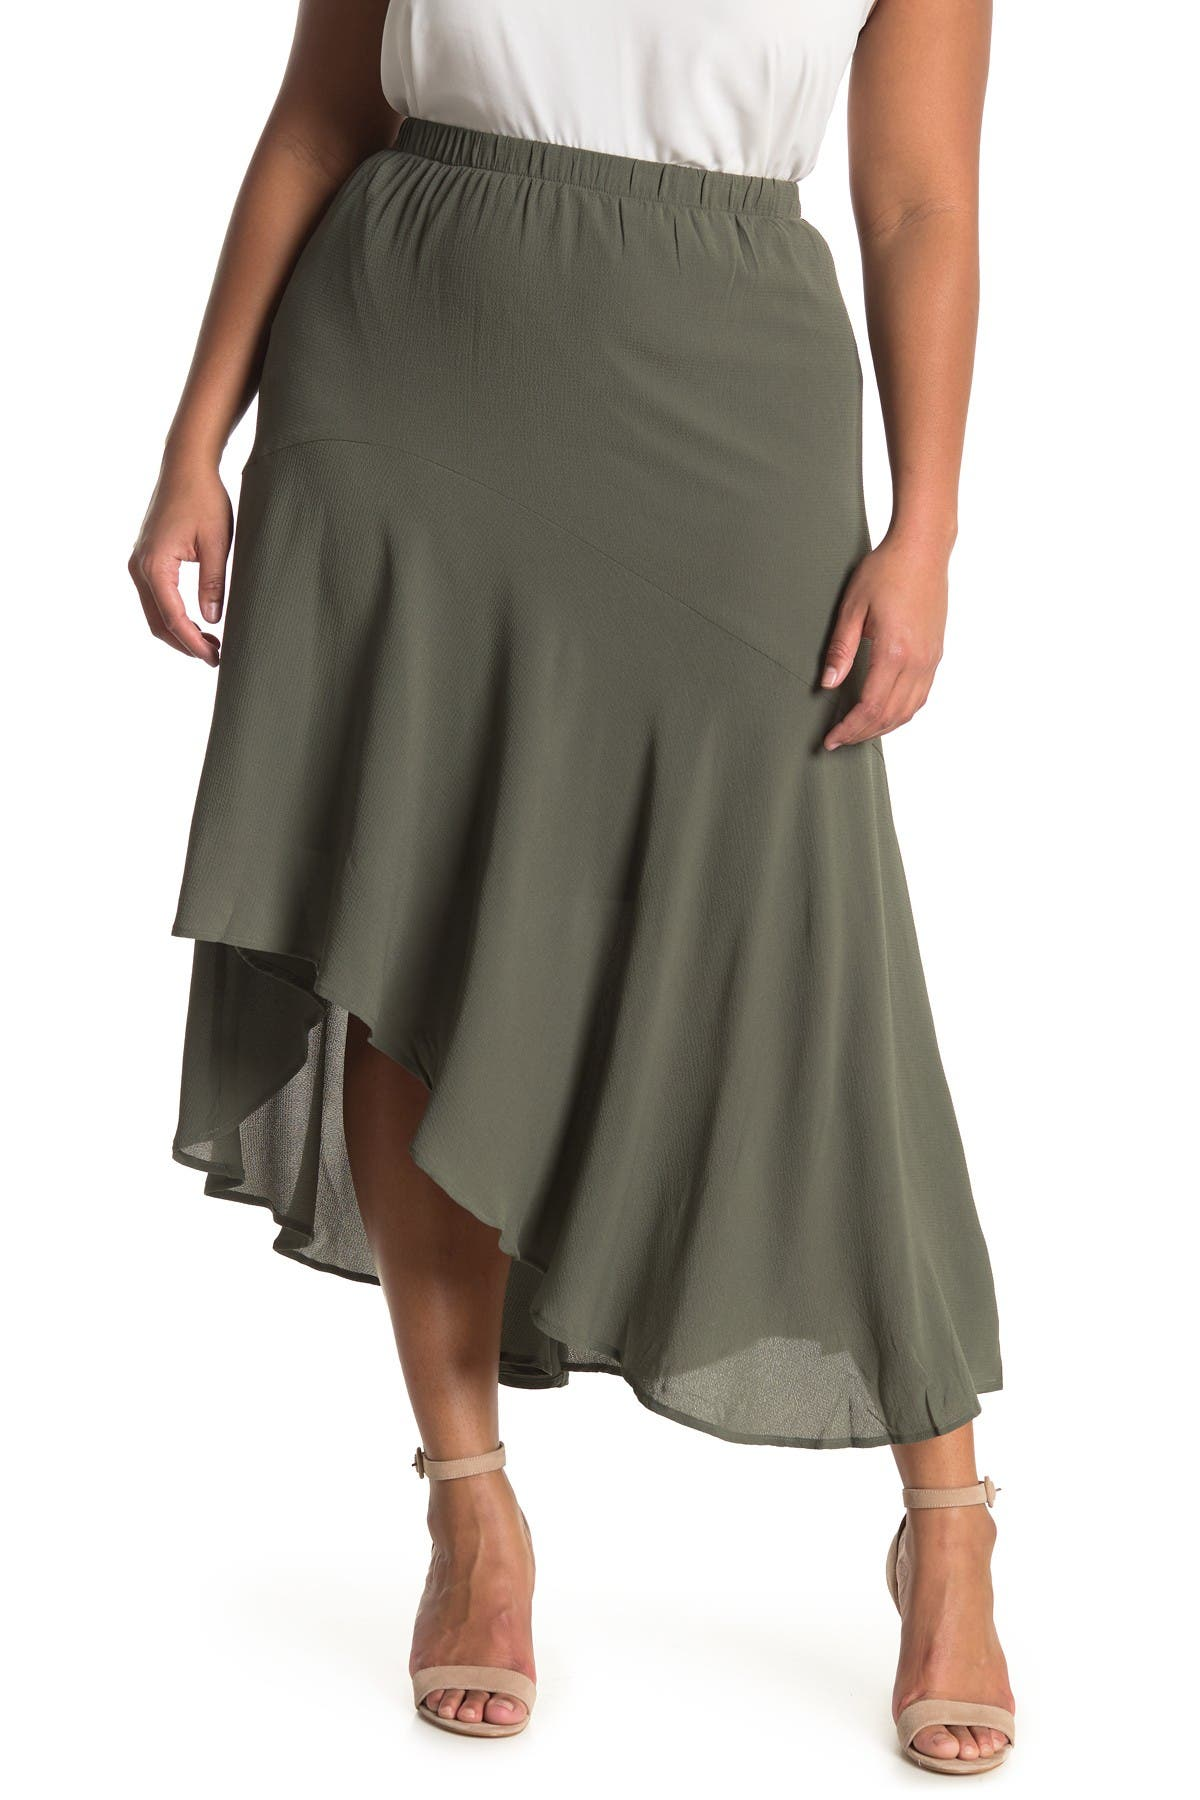 Image of 14TH PLACE Asymmetrical Maxi Skirt